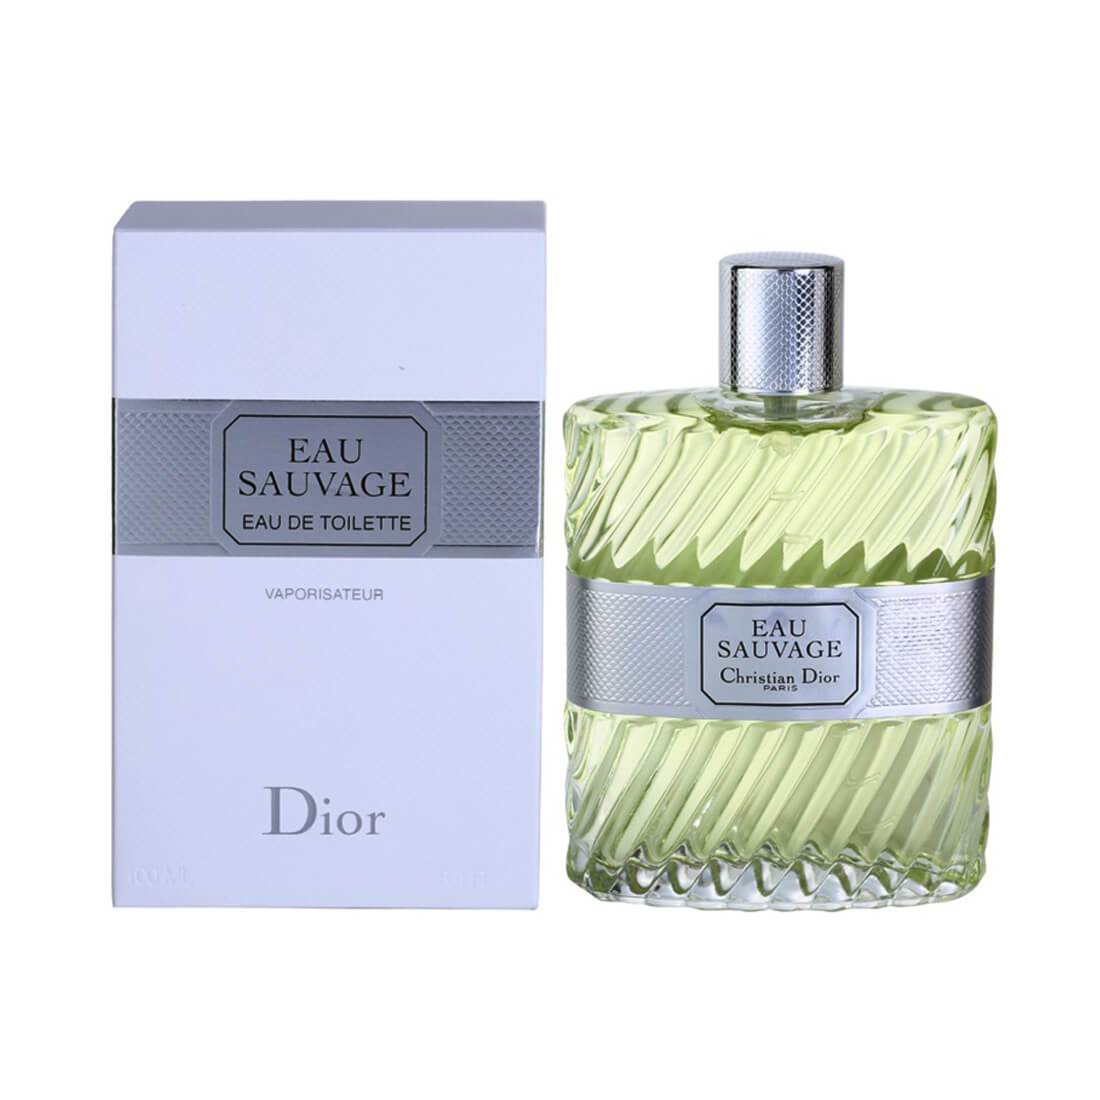 Christian Dior Eau Sauvage Eau De Toilette For Men - 100ml